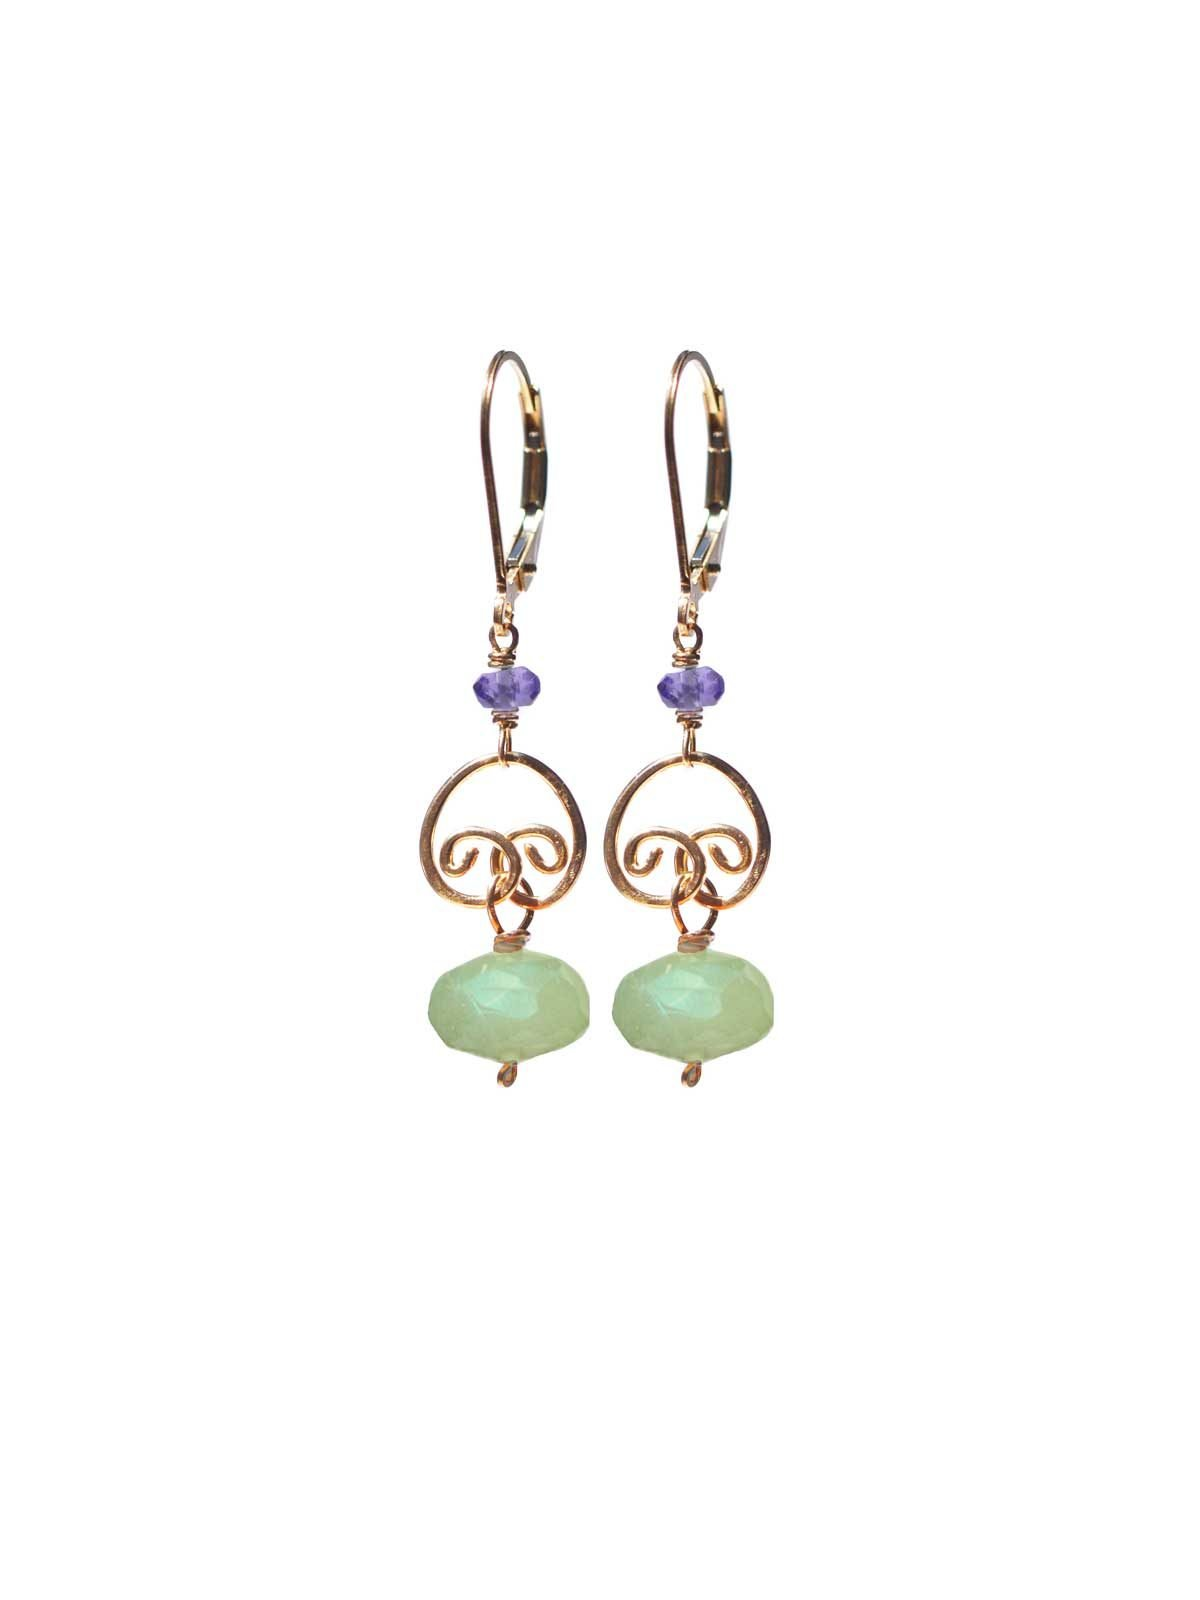 Gold lever back earrings Prehnite Amethyst